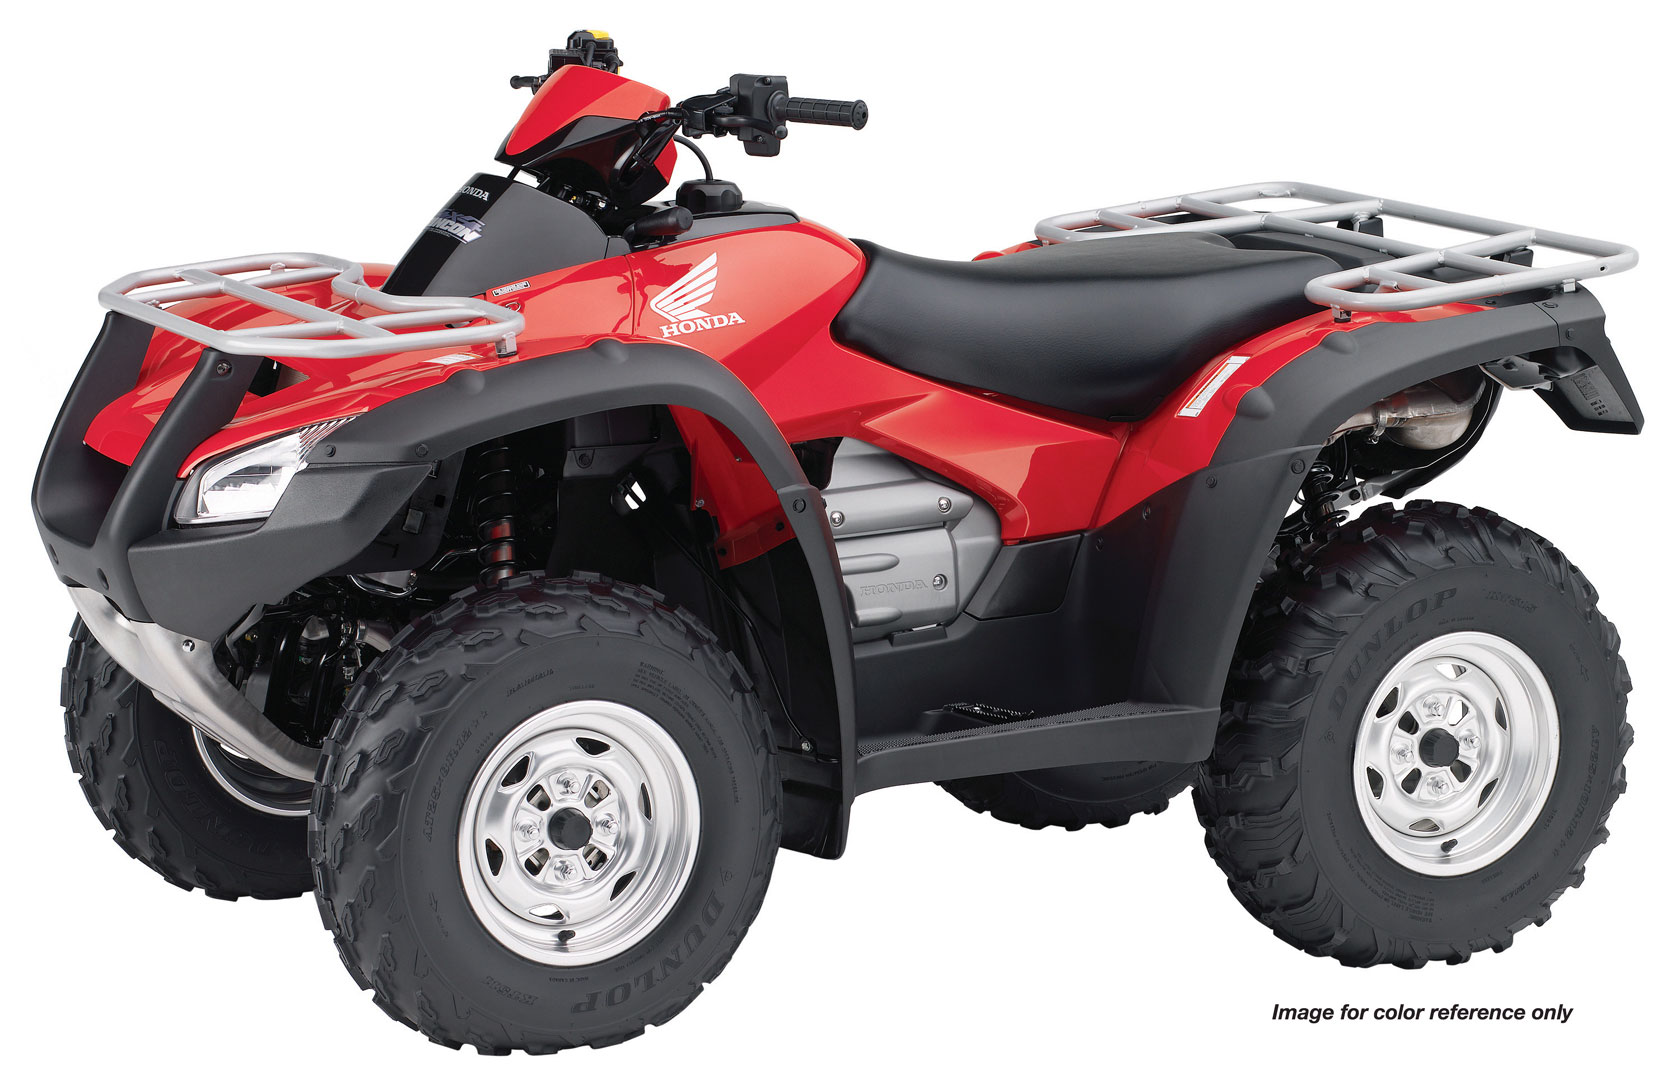 honda fourtrax rincon trx680fg specs 2009 2010 autoevolution. Black Bedroom Furniture Sets. Home Design Ideas